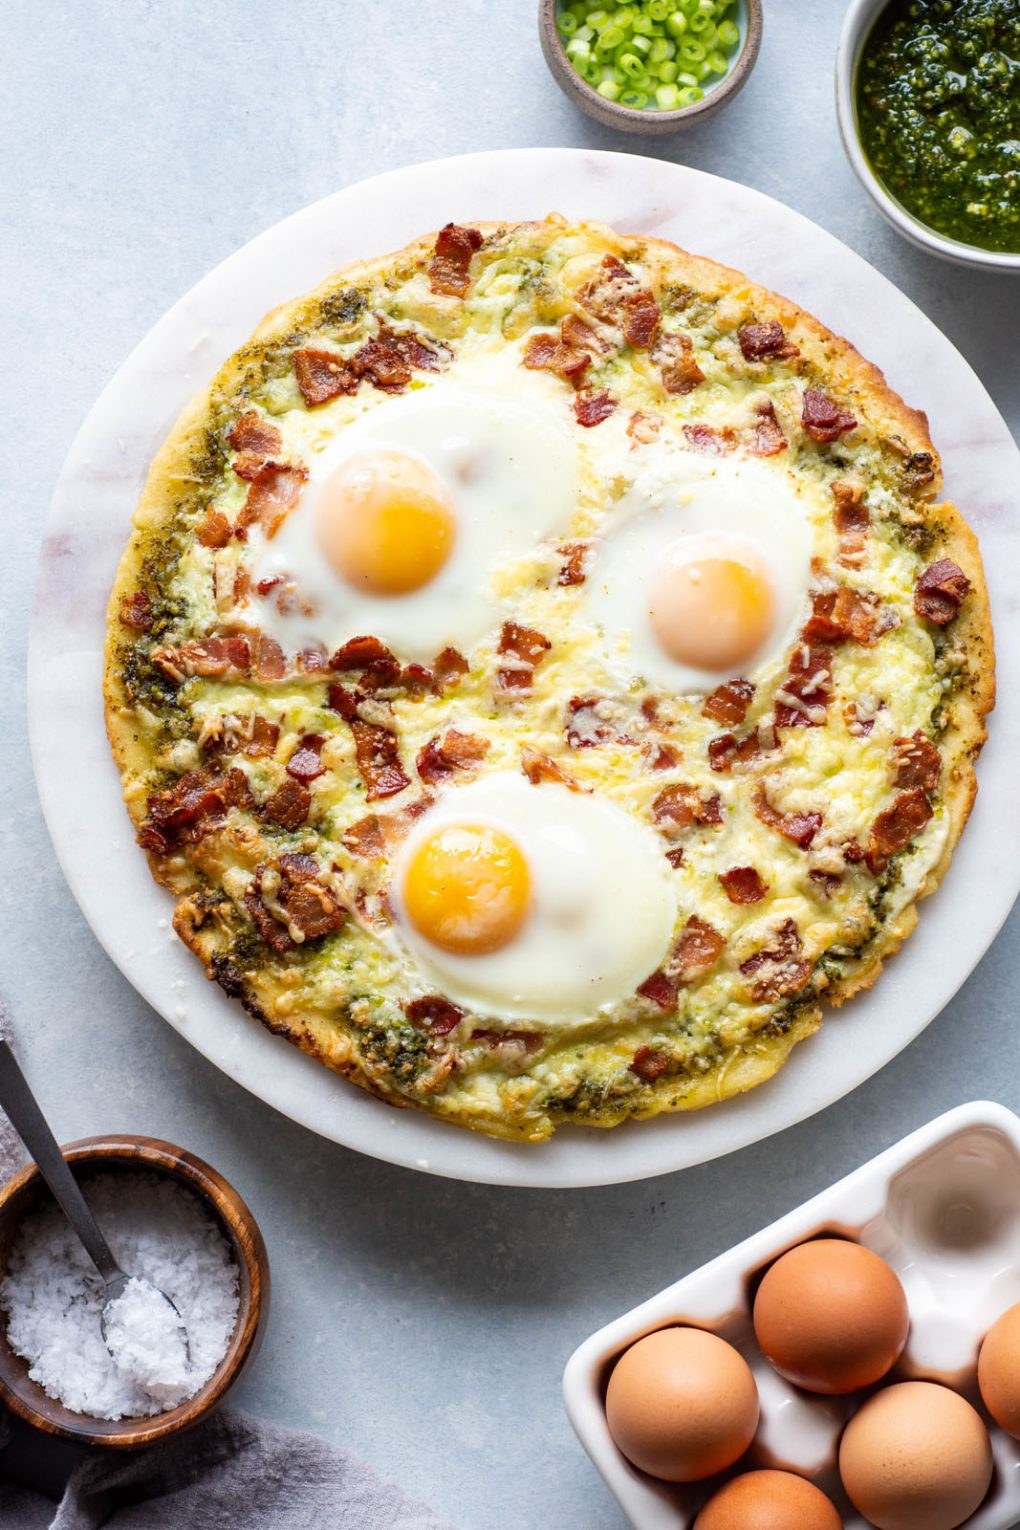 Overhead shot of cooked breakfast pizza. Topped with cheese, crispy bacon, sunny side up eggs. On a light colored marble serving tray and a light background. Next to a small bowl of sliced green onions, and another small bowl of pesto.